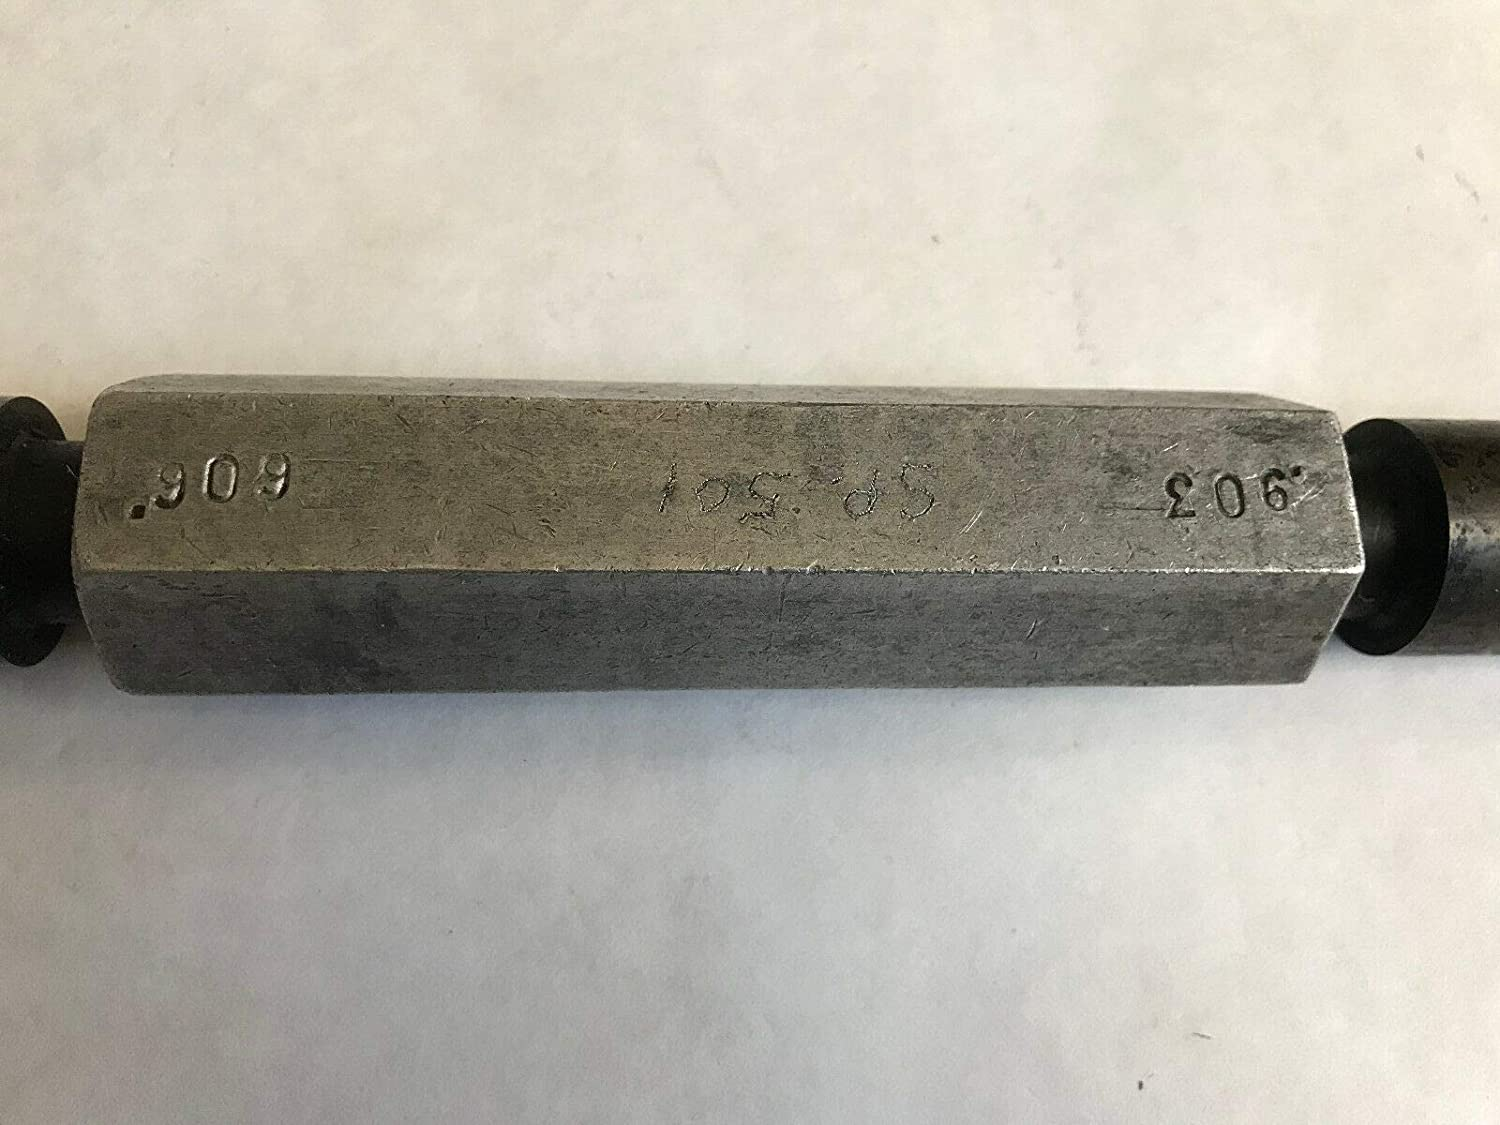 THE PIPE MACHINERY PLUG INSPECTION GAGE SP-501 GO .903 NO GO .909,ET